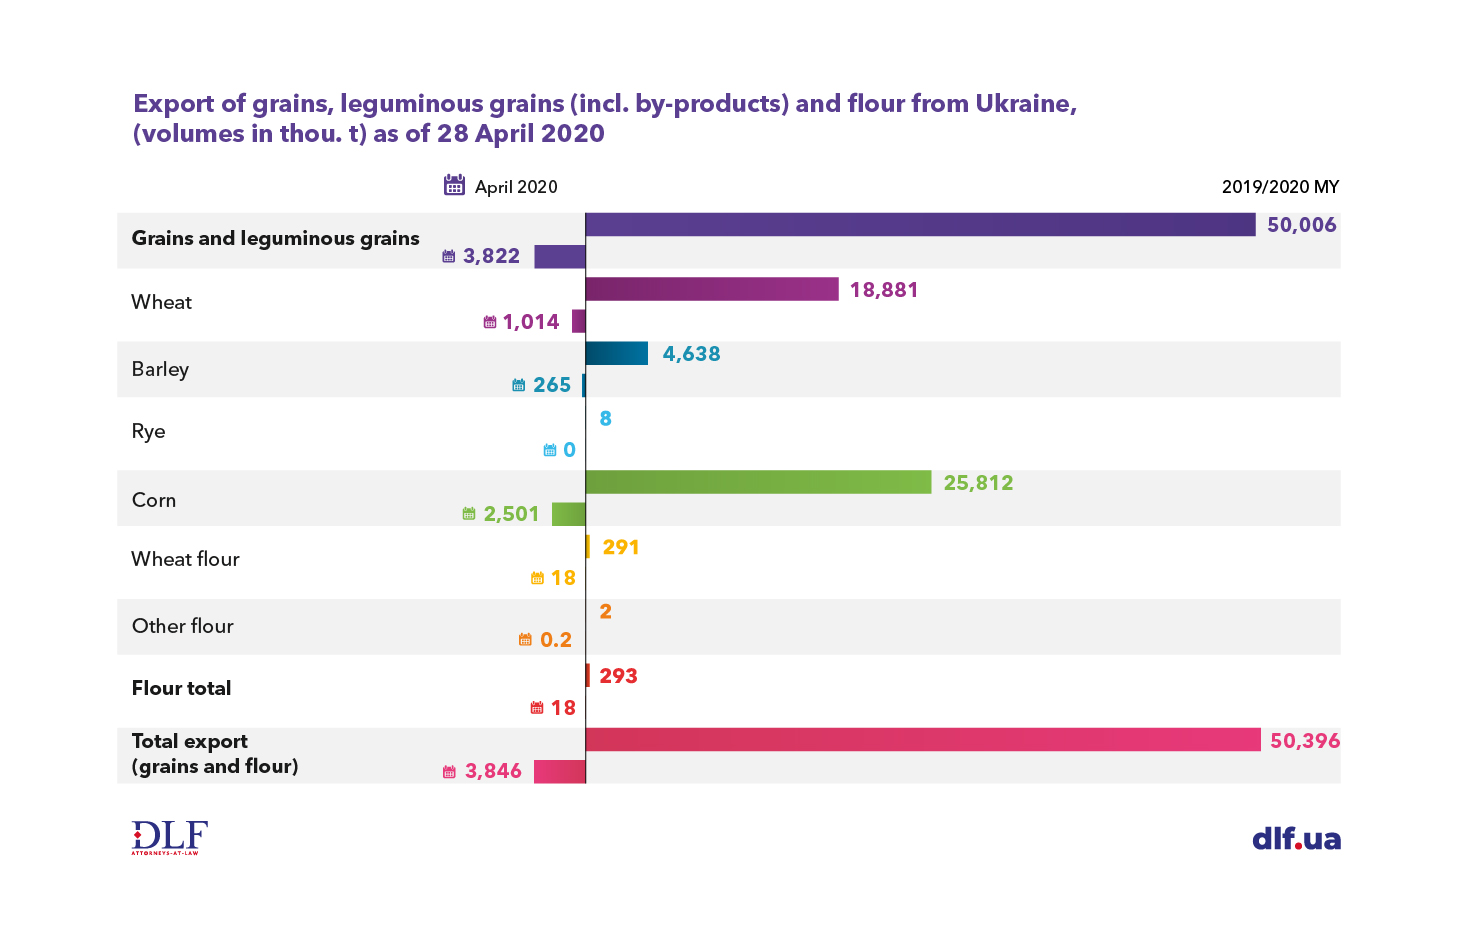 Ukraine agriculture - DLF attorneys-at-law - Export of grains, leguminous grains and flour from Ukraine in 2019-2020 МY Chart